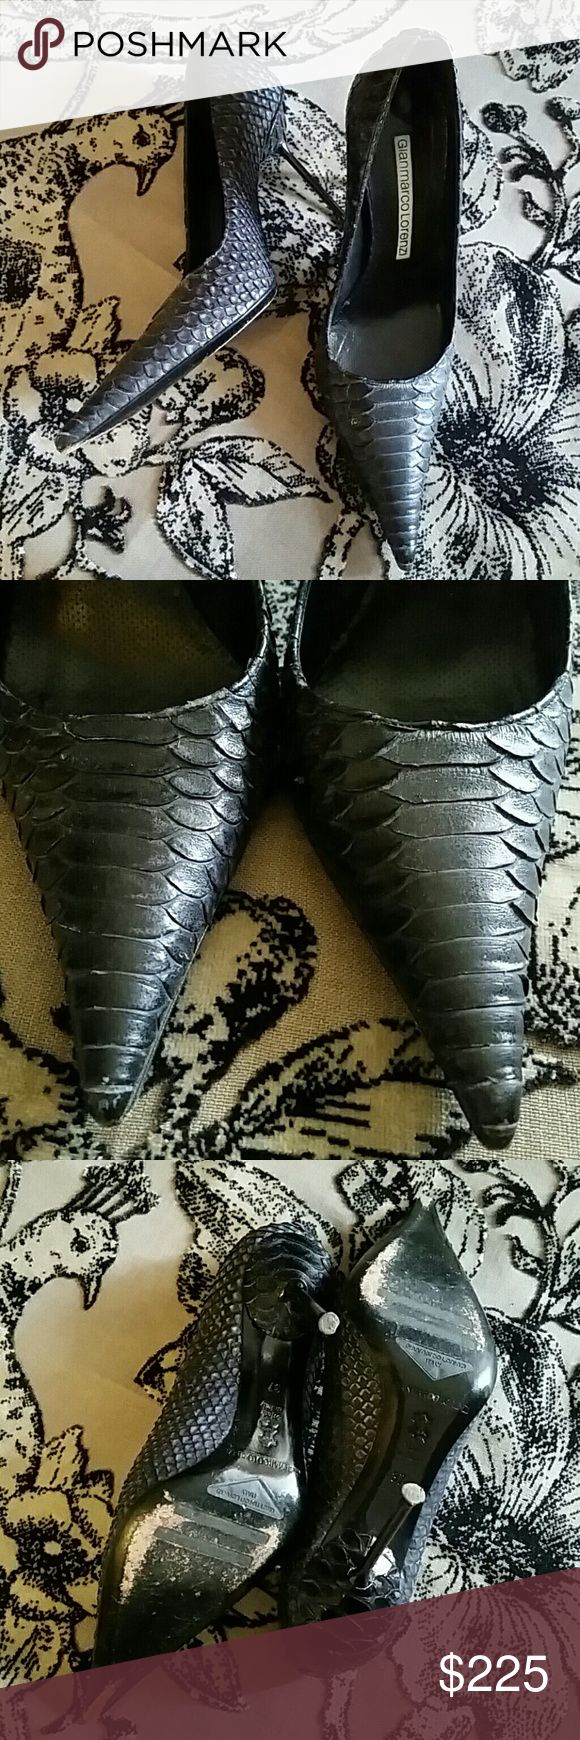 Gianmarco Lorenzi Python Leather Stilettos Size 37 Color varies through out. But brown purple, somewhat eggplant. Very good condition, but not excellent. Some wear on sole, and natural variance of snake skin shows some uneven color/texture as I tried to depict in photos. Gianmarco Lorenzi  Shoes Heels